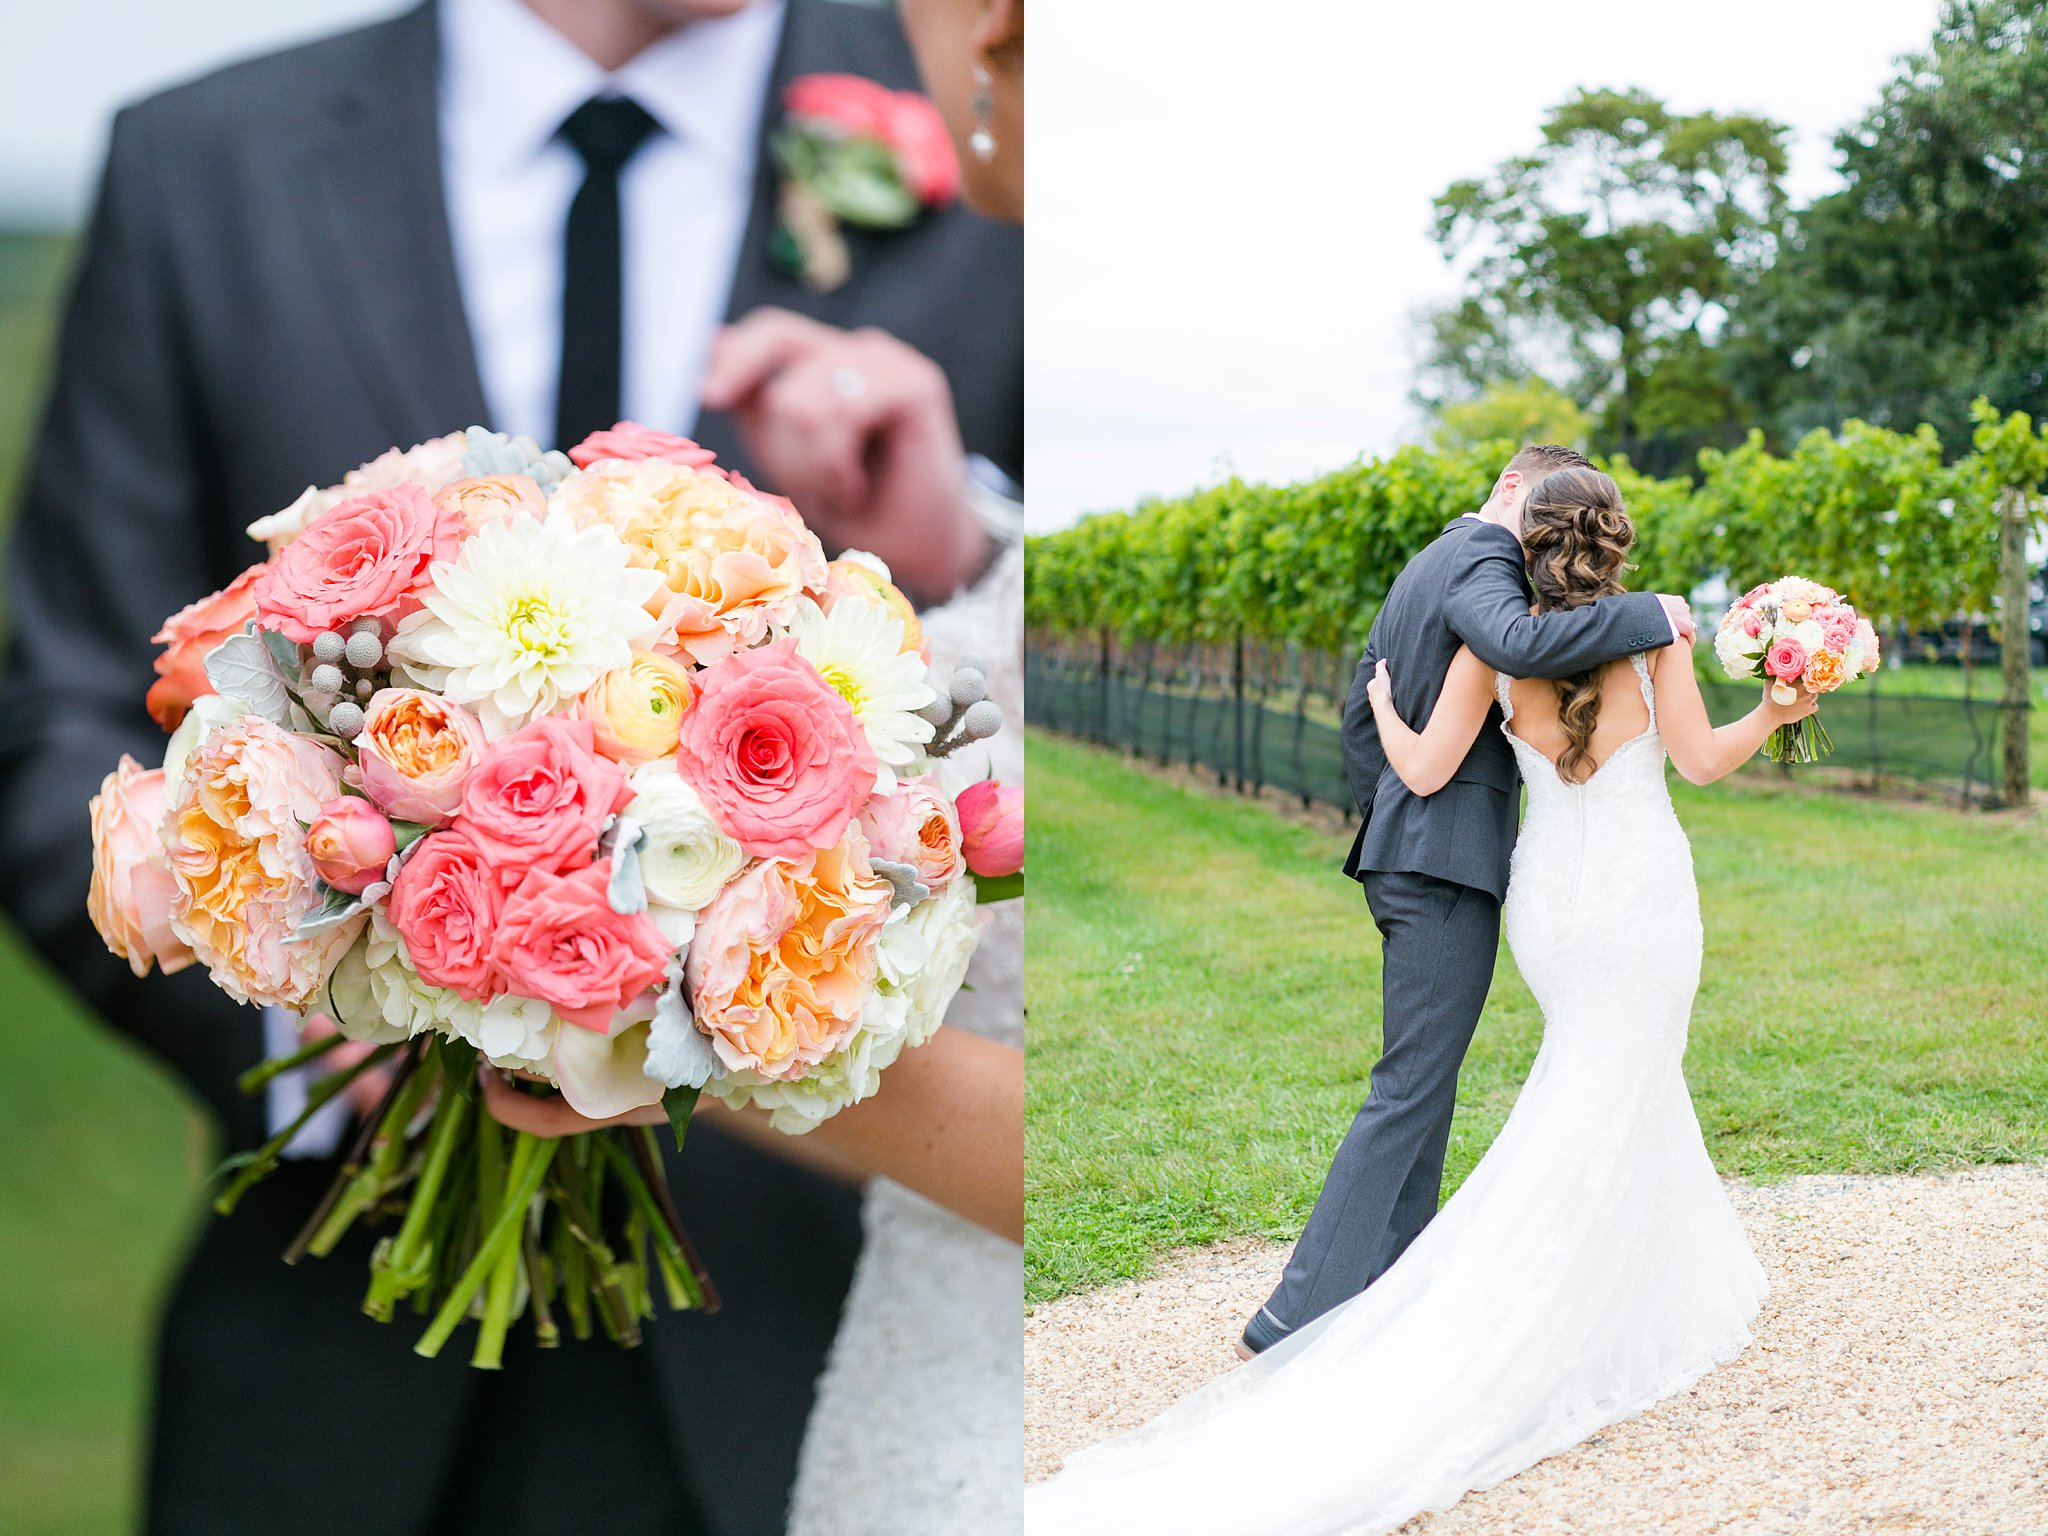 Stone Tower Winery Wedding Photos Virginia Wedding Photographer Megan Kelsey Photography Sam & Angela-178.jpg